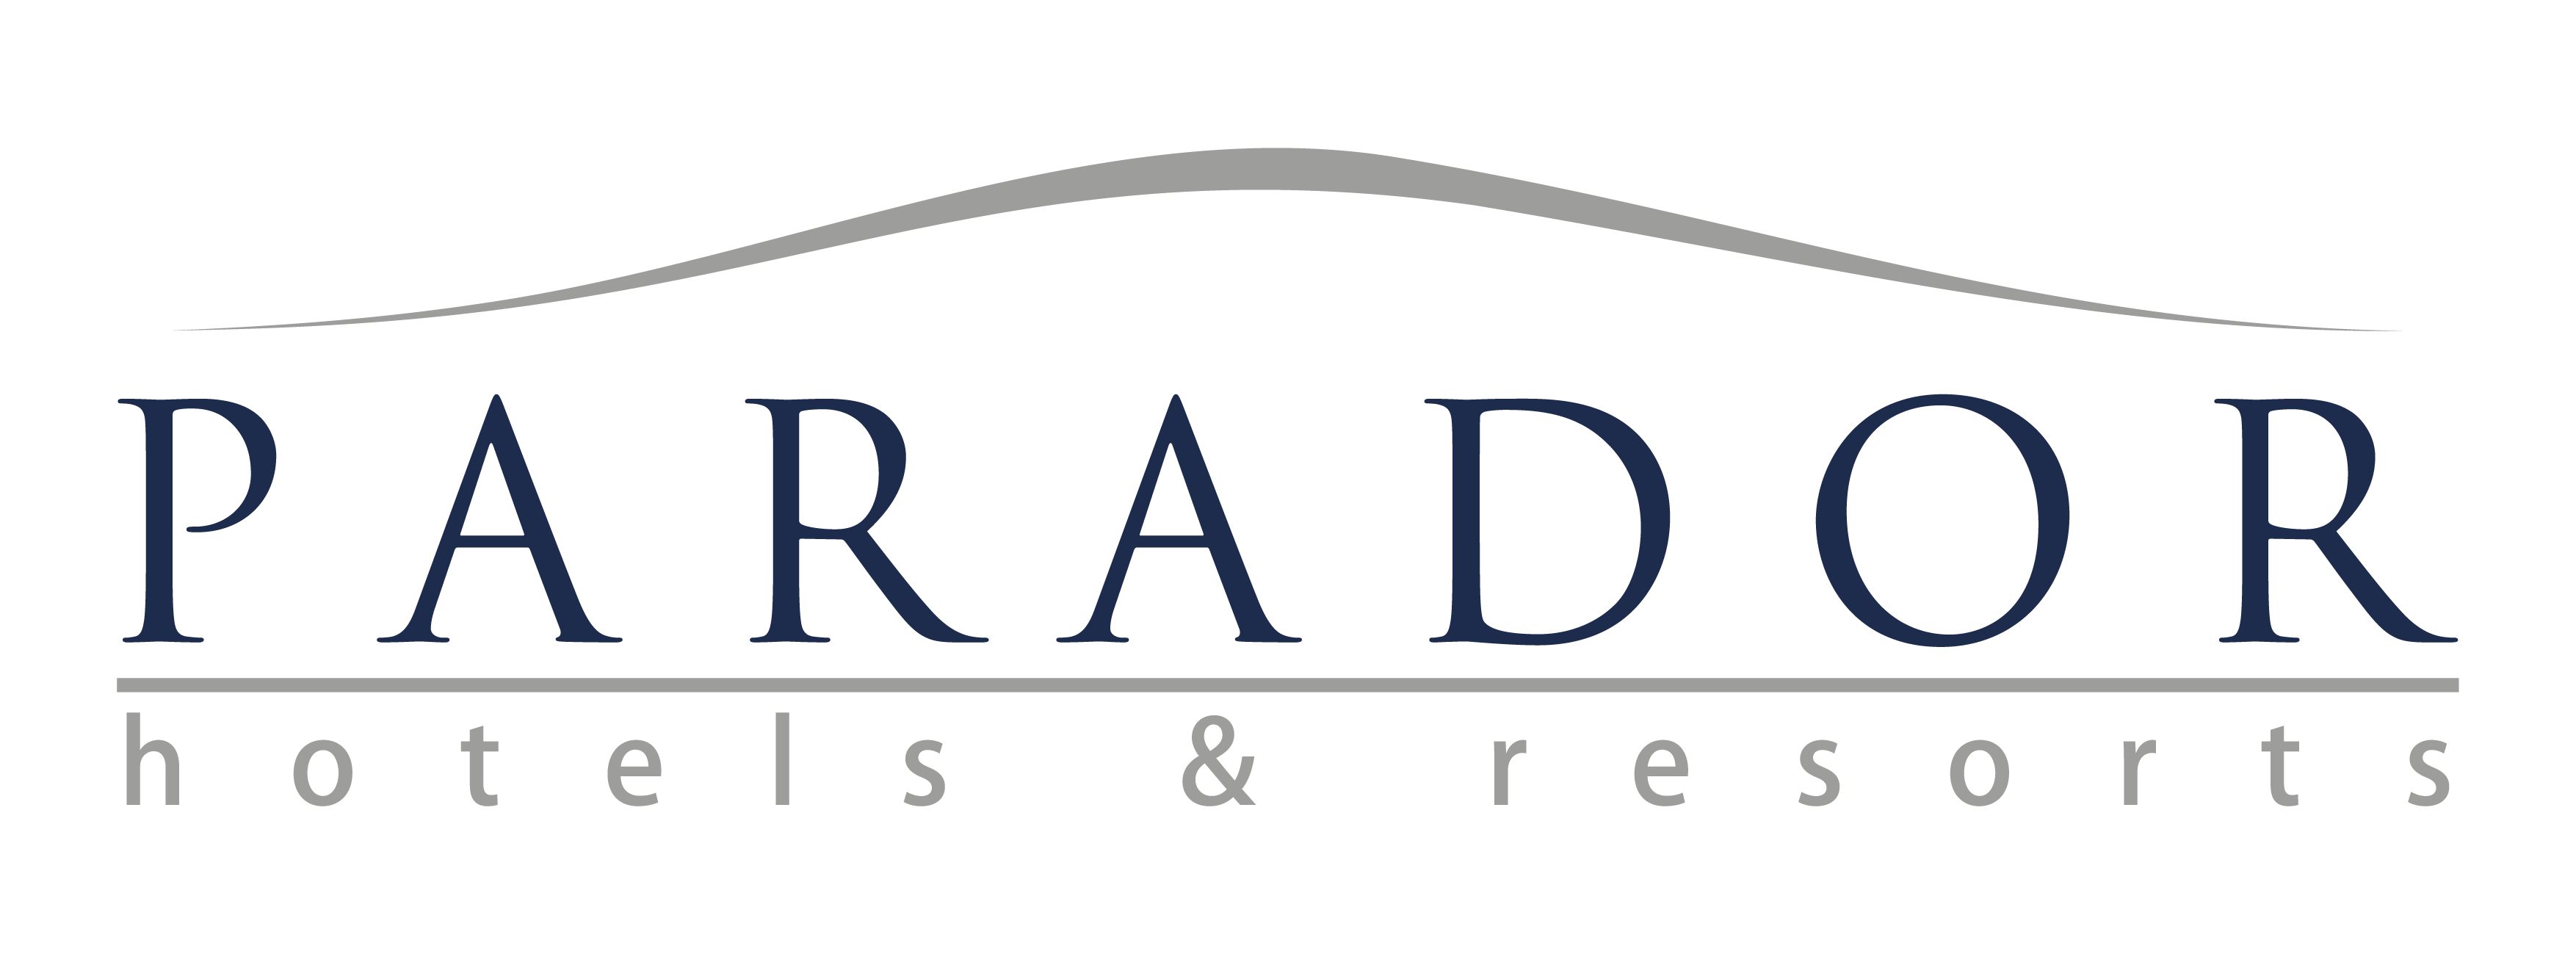 Parador Hotels & Resorts